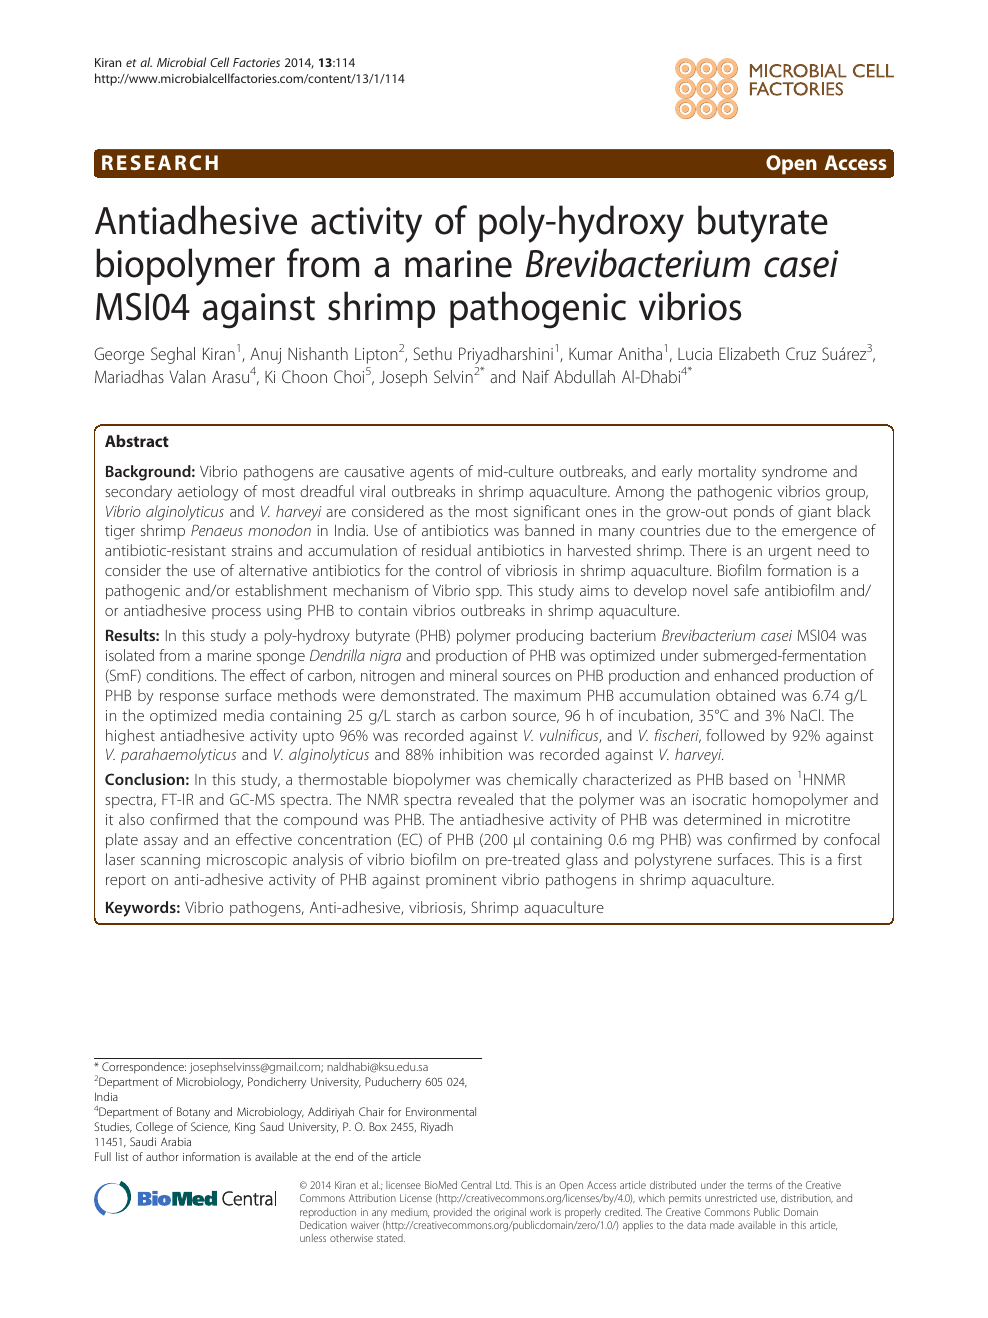 Antiadhesive activity of poly-hydroxy butyrate biopolymer